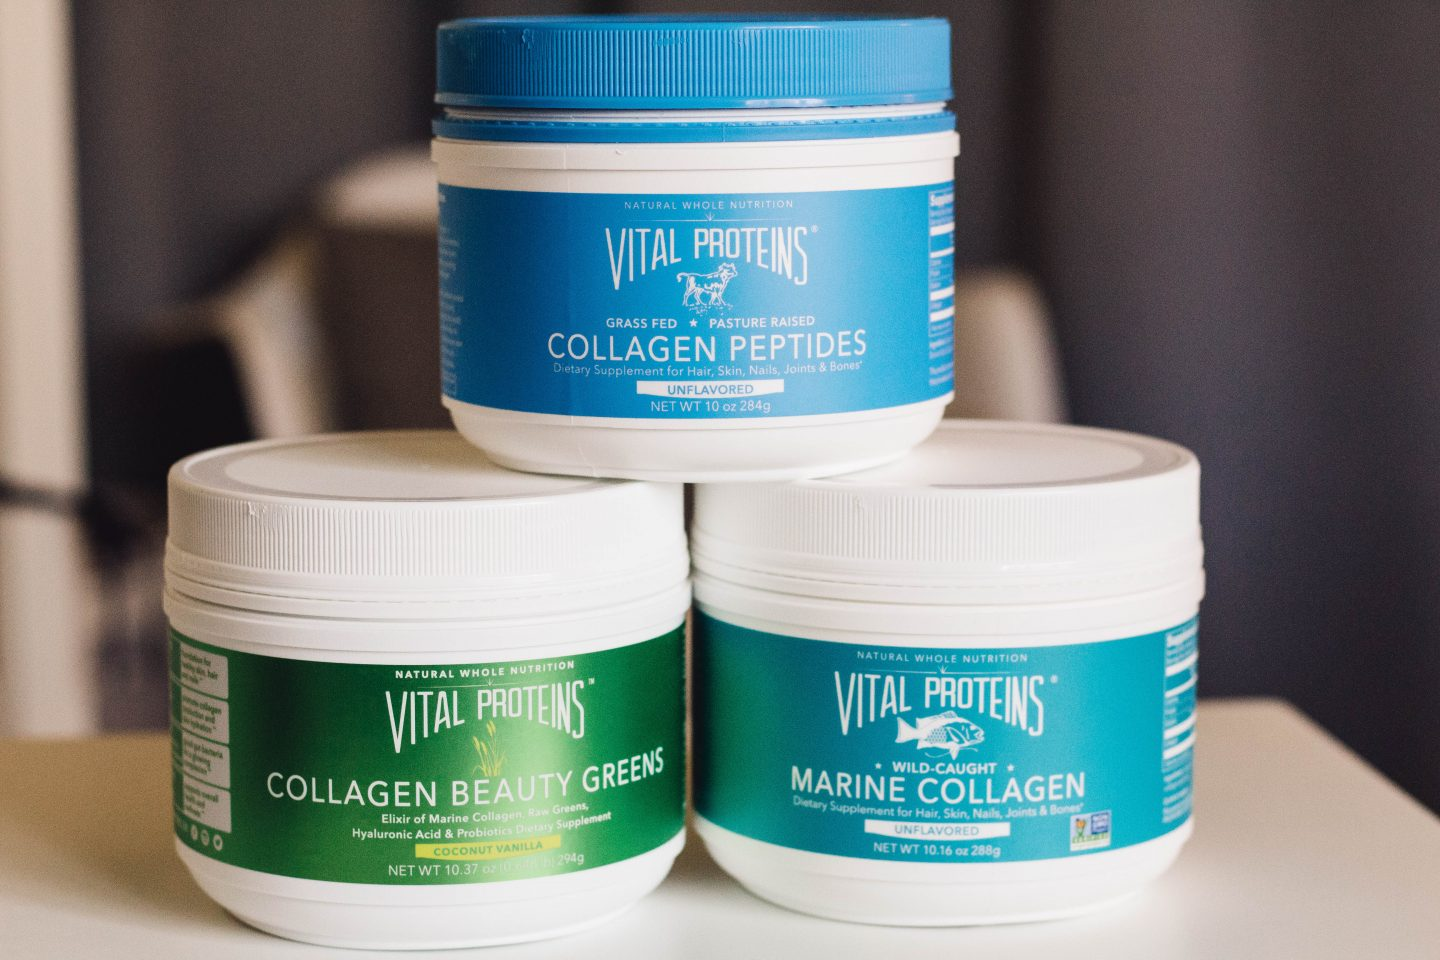 Vital Proteins Collagen Peptides Healthy Living